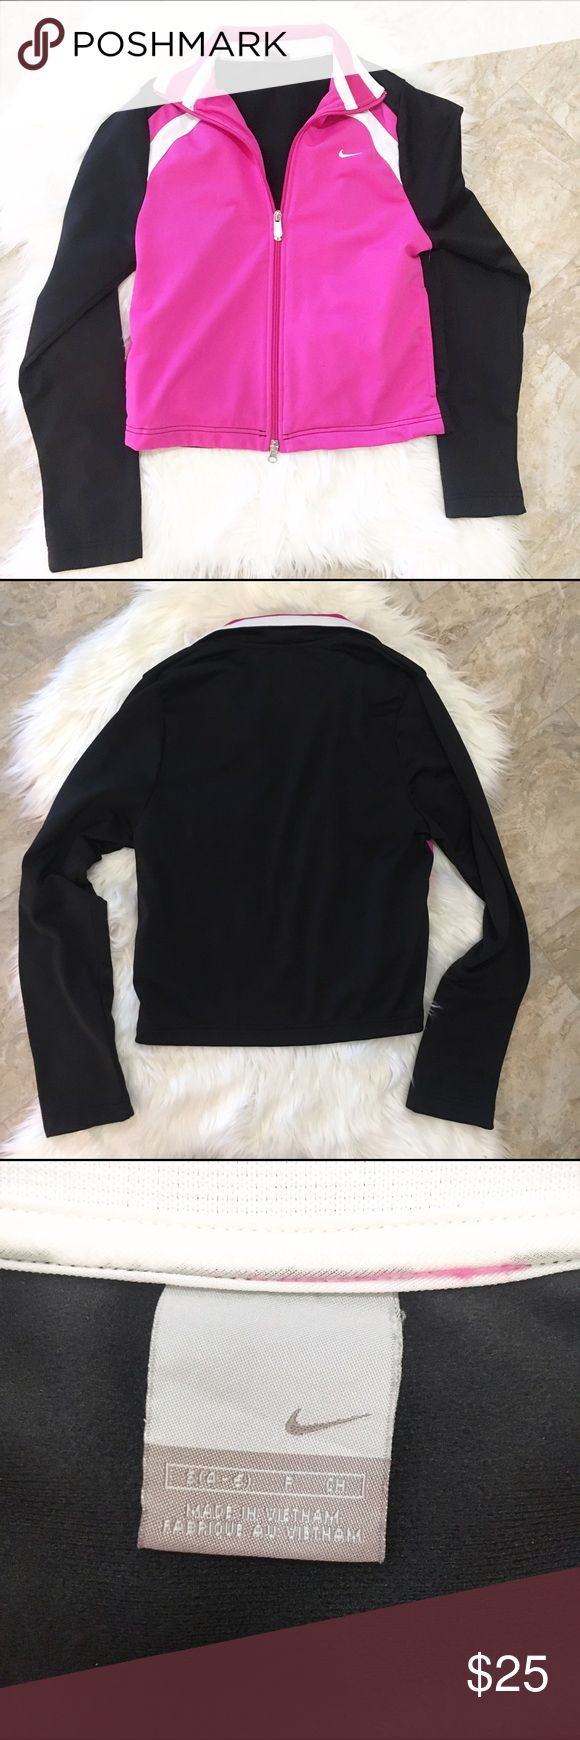 Pink and Black Nike Zip Up Sweat Shirt Pink, black and white Nike zip up sweatshirt in excellent condition. No stains or pulling. 100% polyester. Nike Tops Sweatshirts & Hoodies